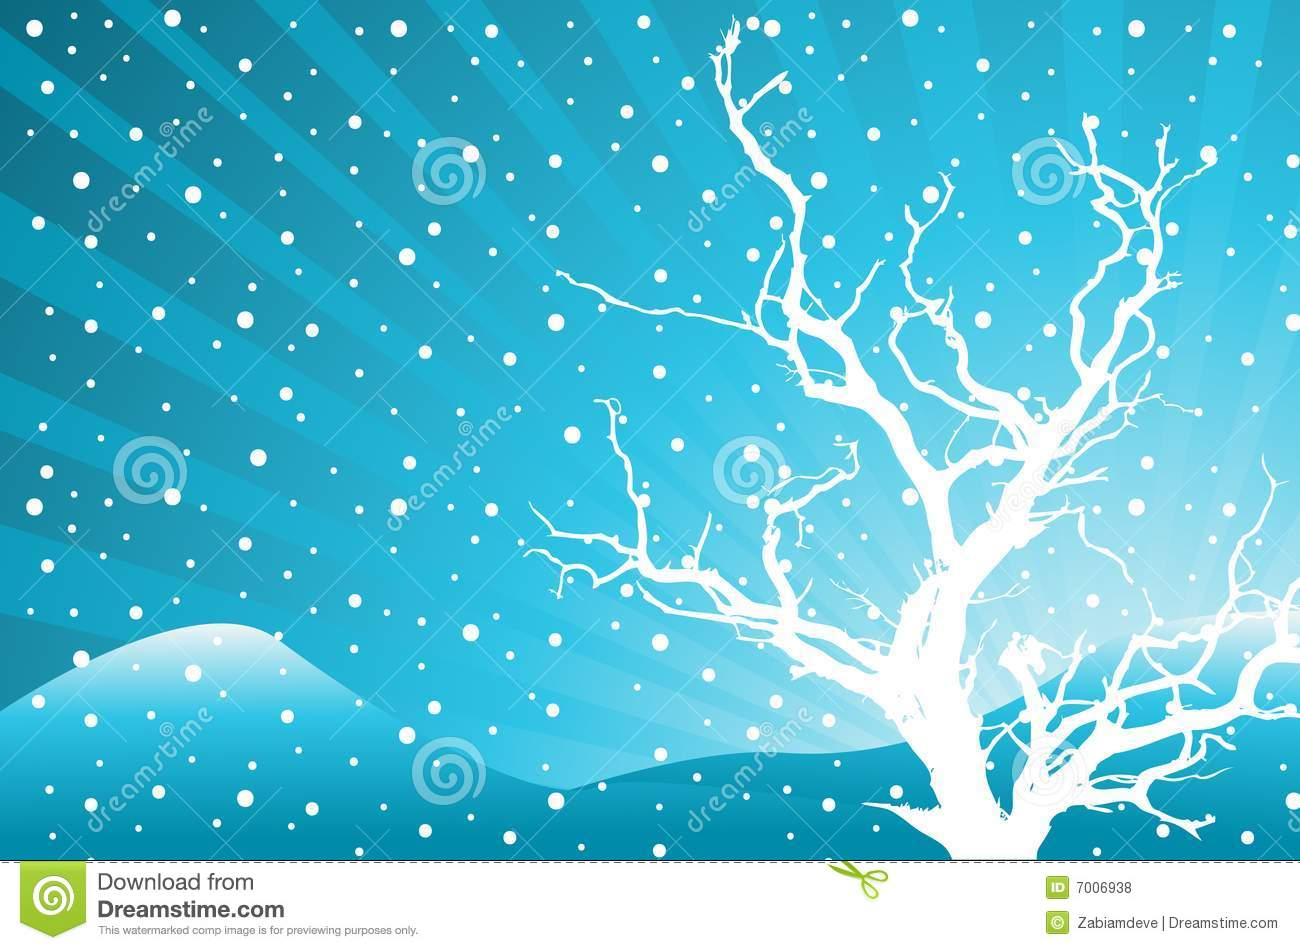 abstract winter background free - photo #20